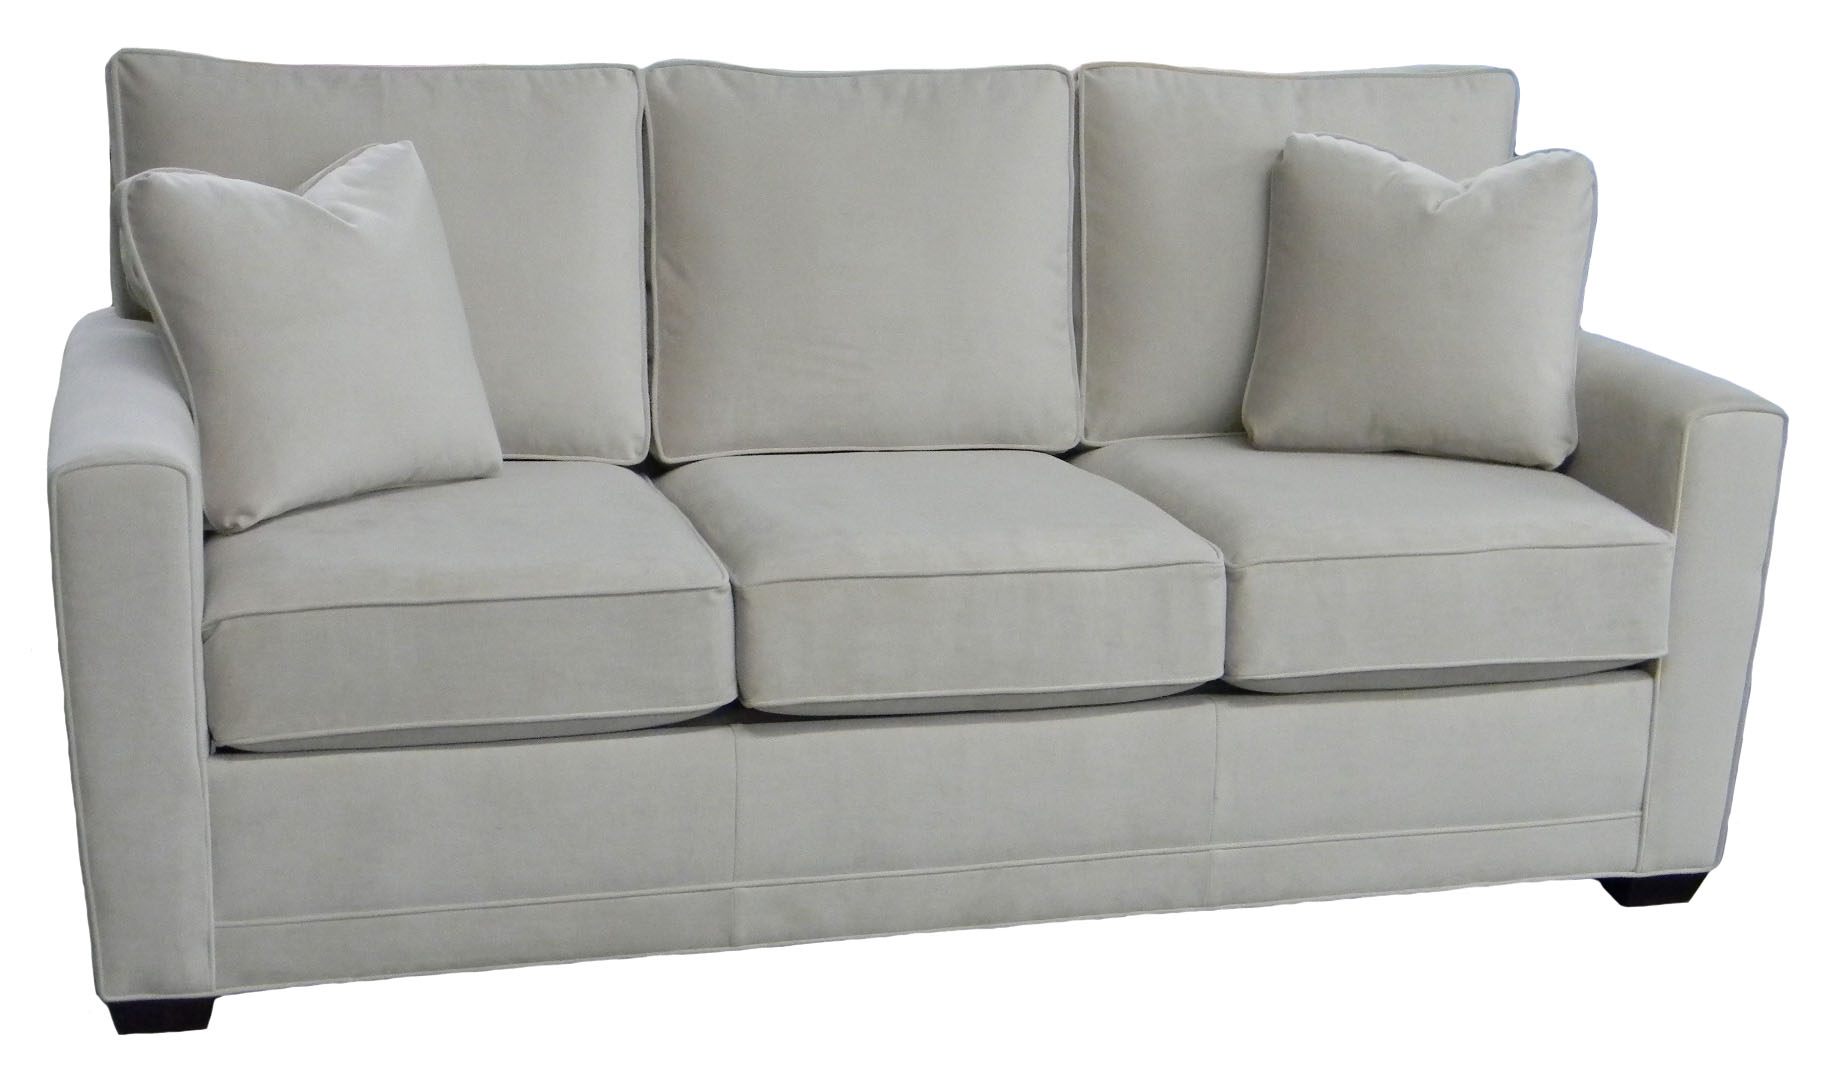 american made sofa sleepers sectional sofas under 500 dollars henley queen sleeper couch carolina chair